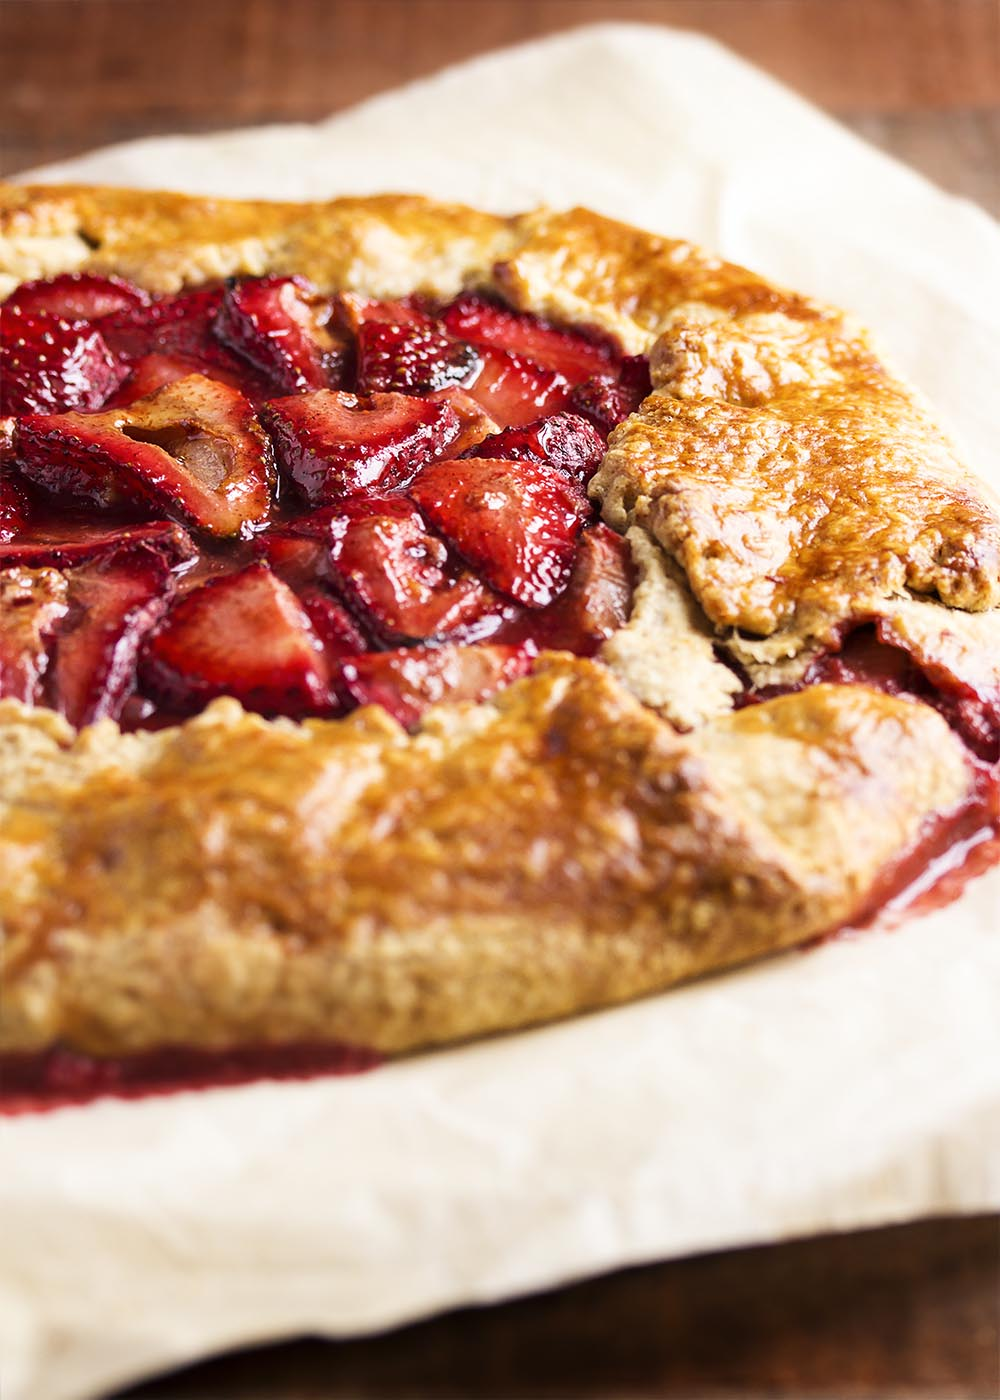 Strawberry Ricotta Crostata - This naturally sweetened crostata is a fun and relaxed take on pie, full of fresh strawberries, creamy ricotta, and brushed with honey. | justalittlebitofbacon.com